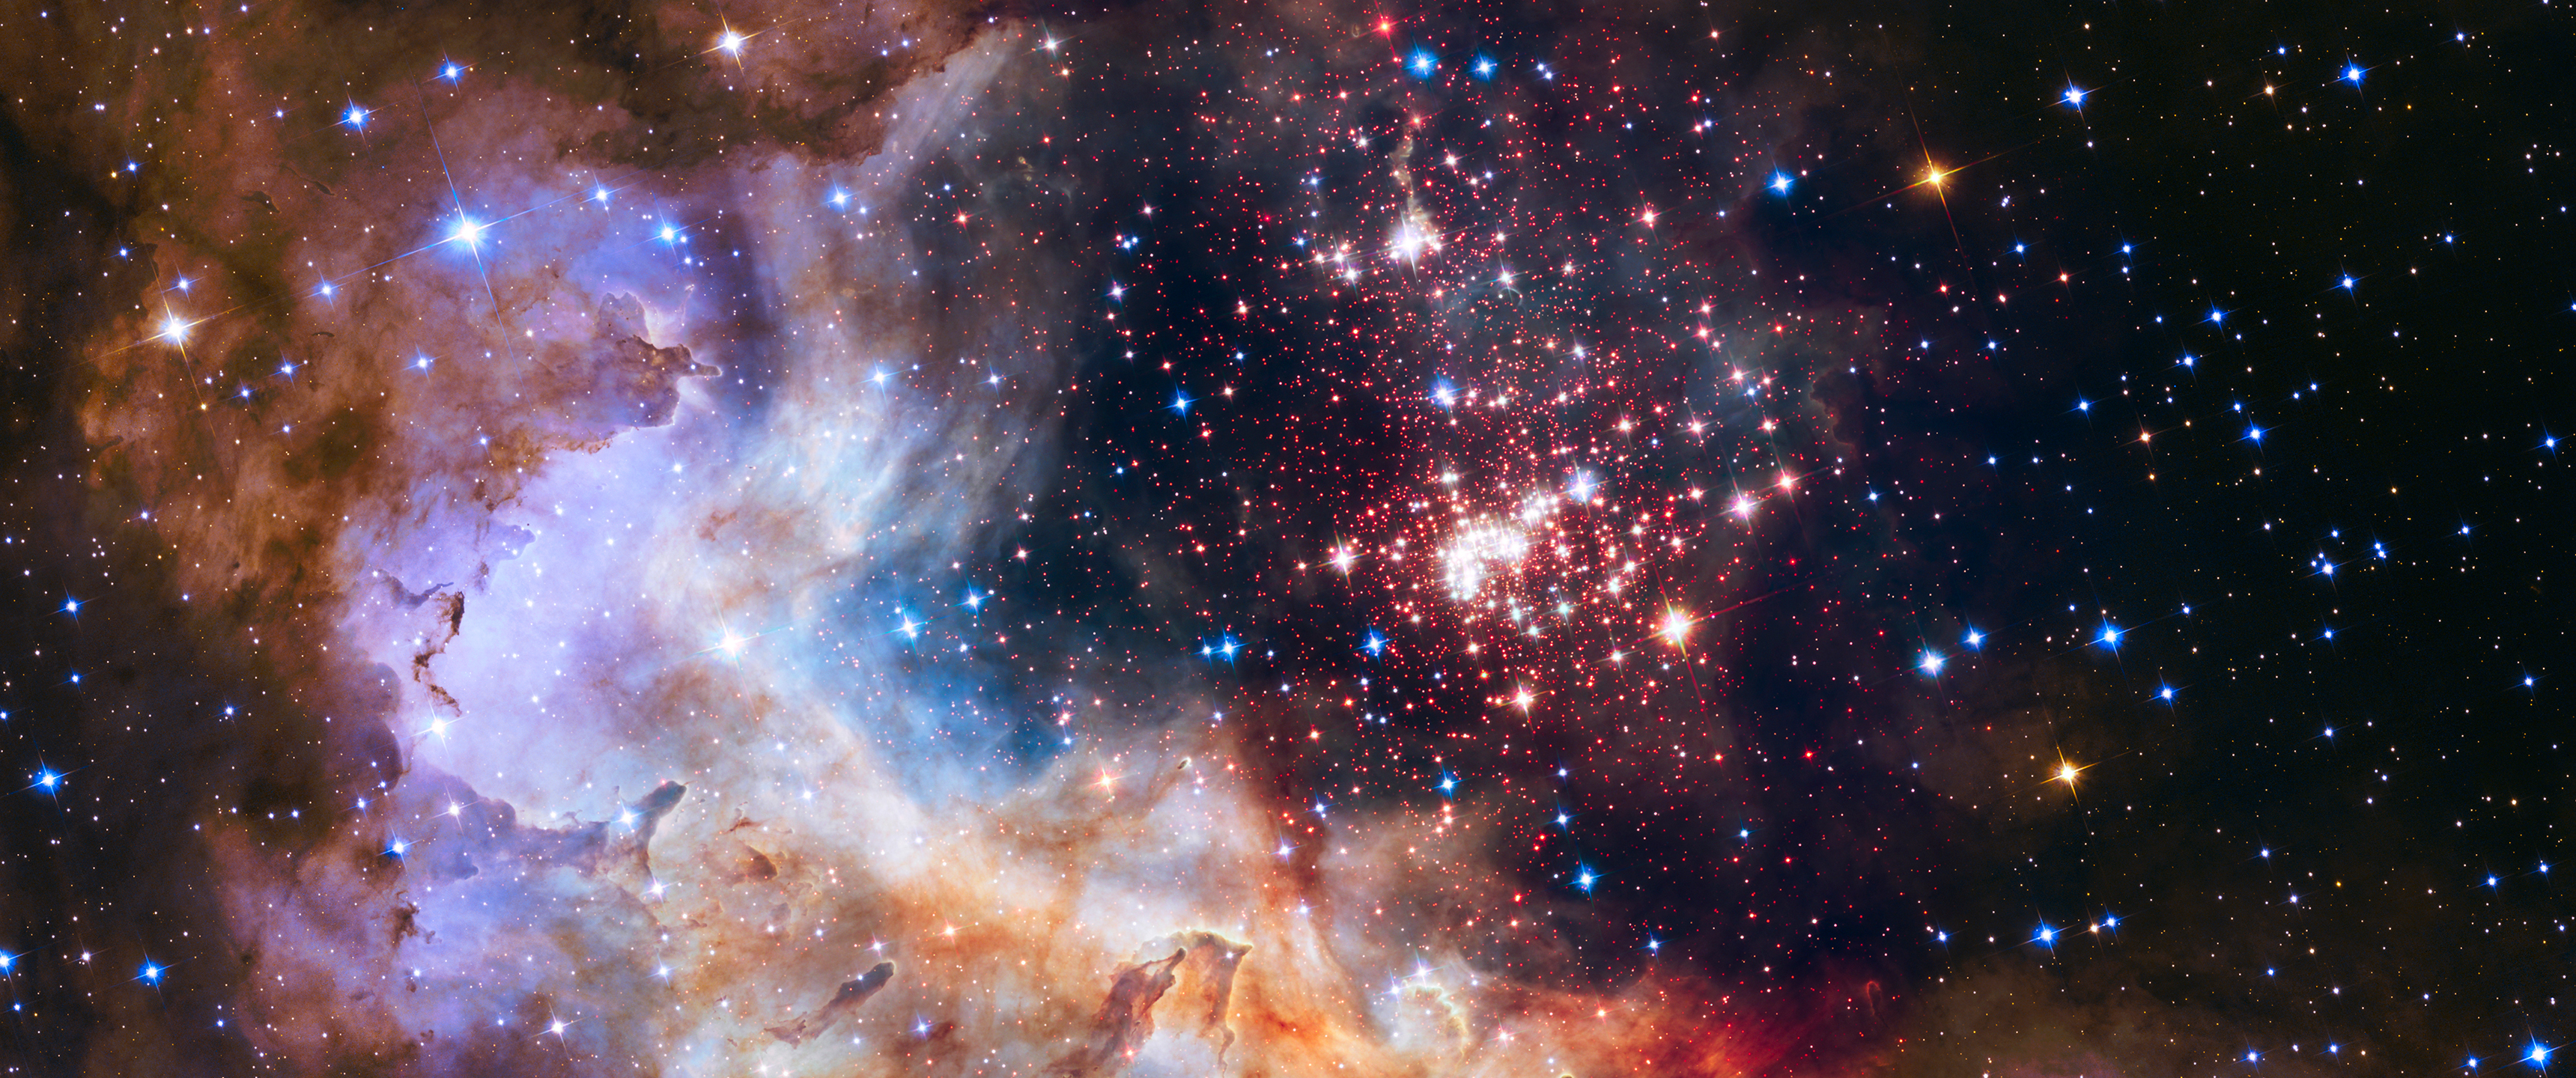 General 3440x1440 space stars space clouds clouds